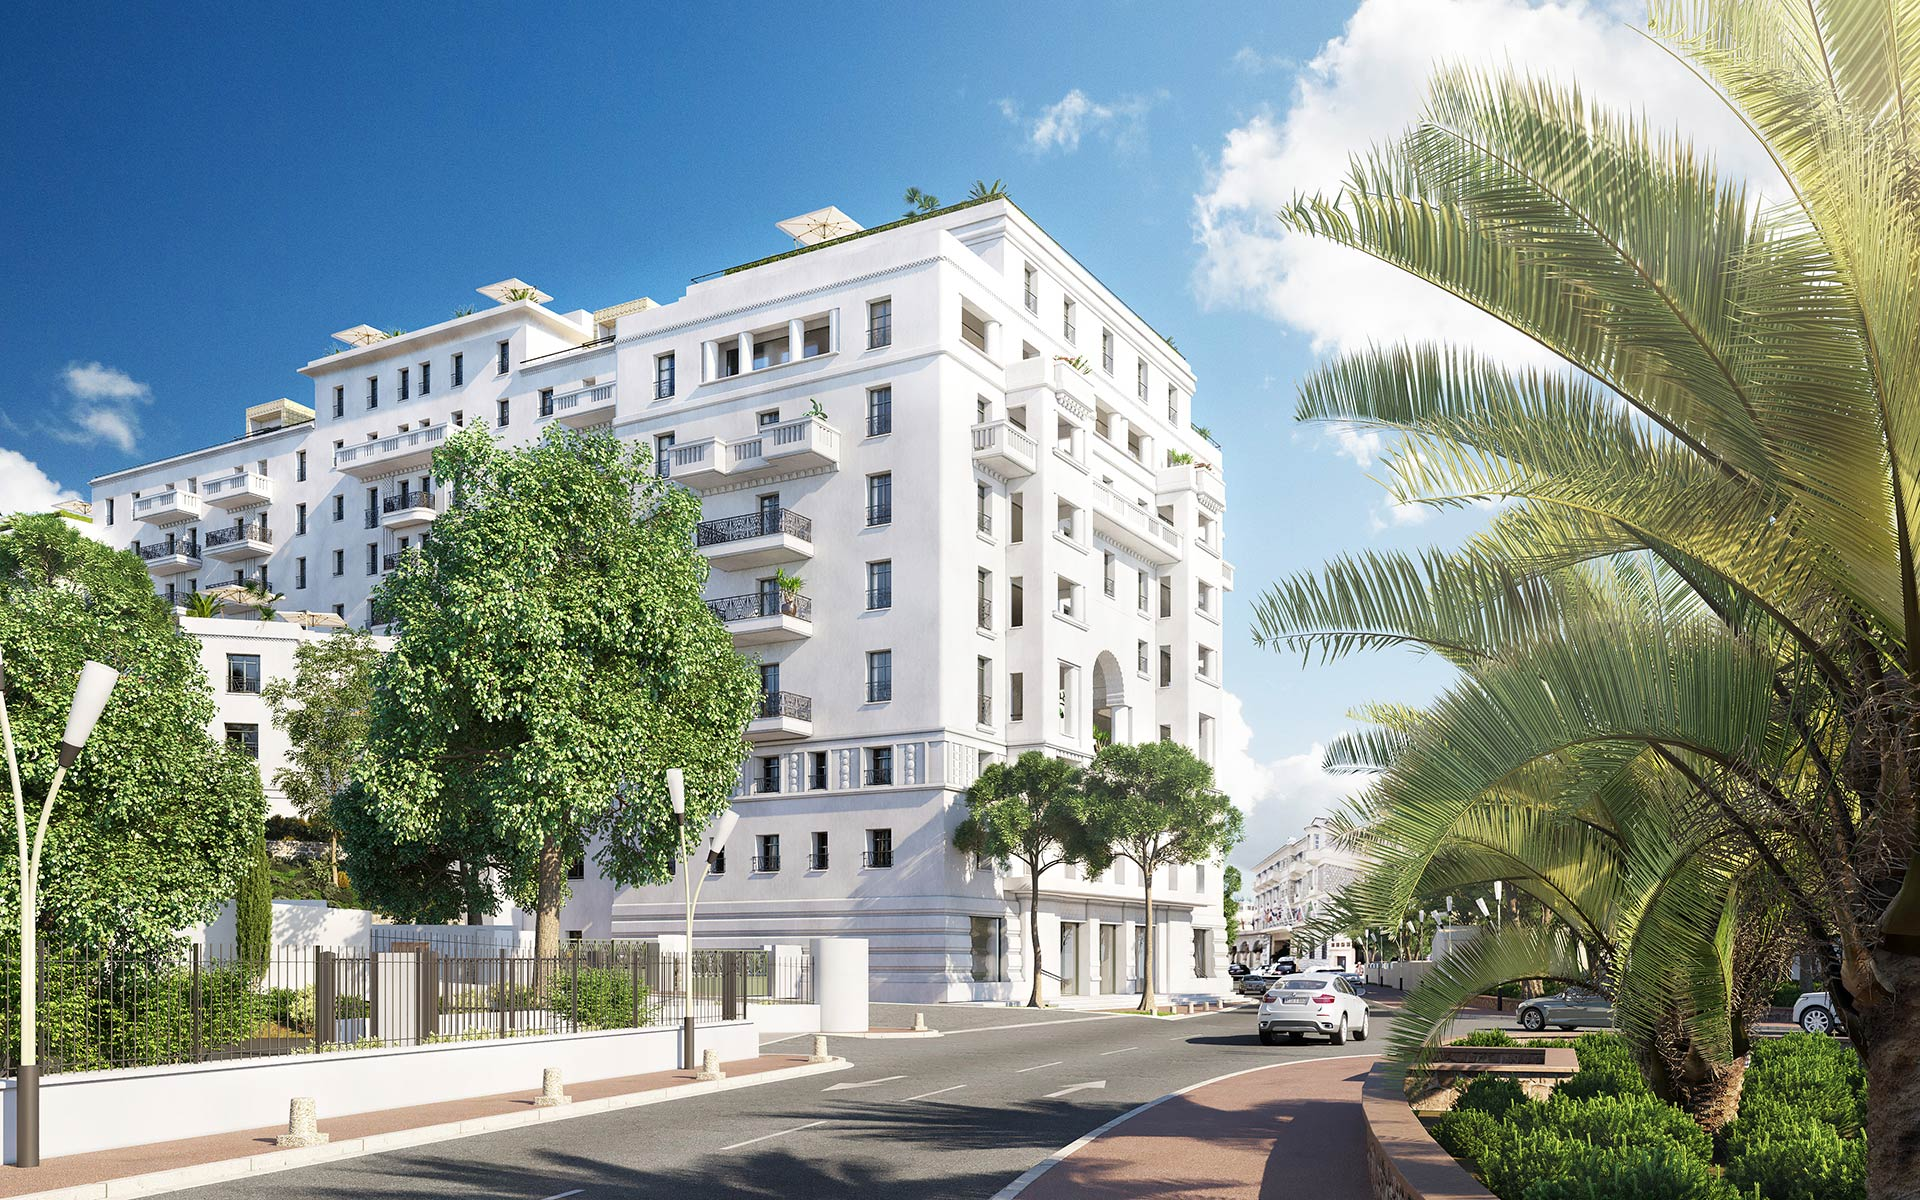 3D Exterior perspective of a hotel in Cannes - Architecture contest